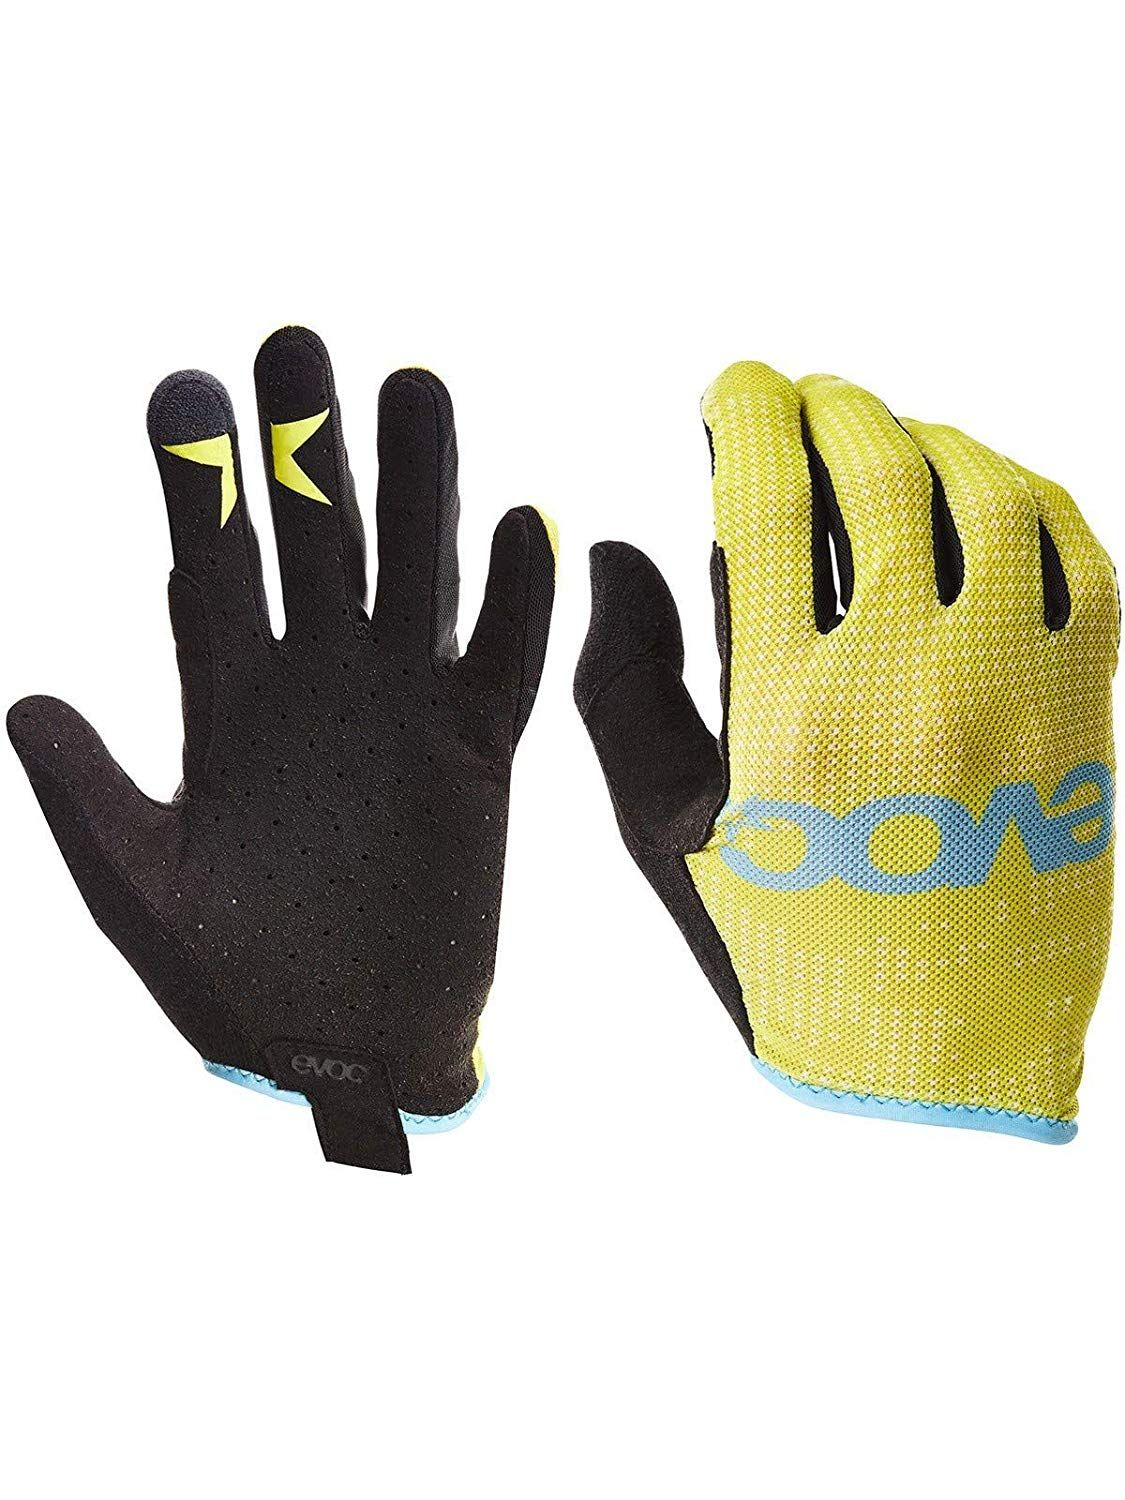 Evoc Sulphur Gloves